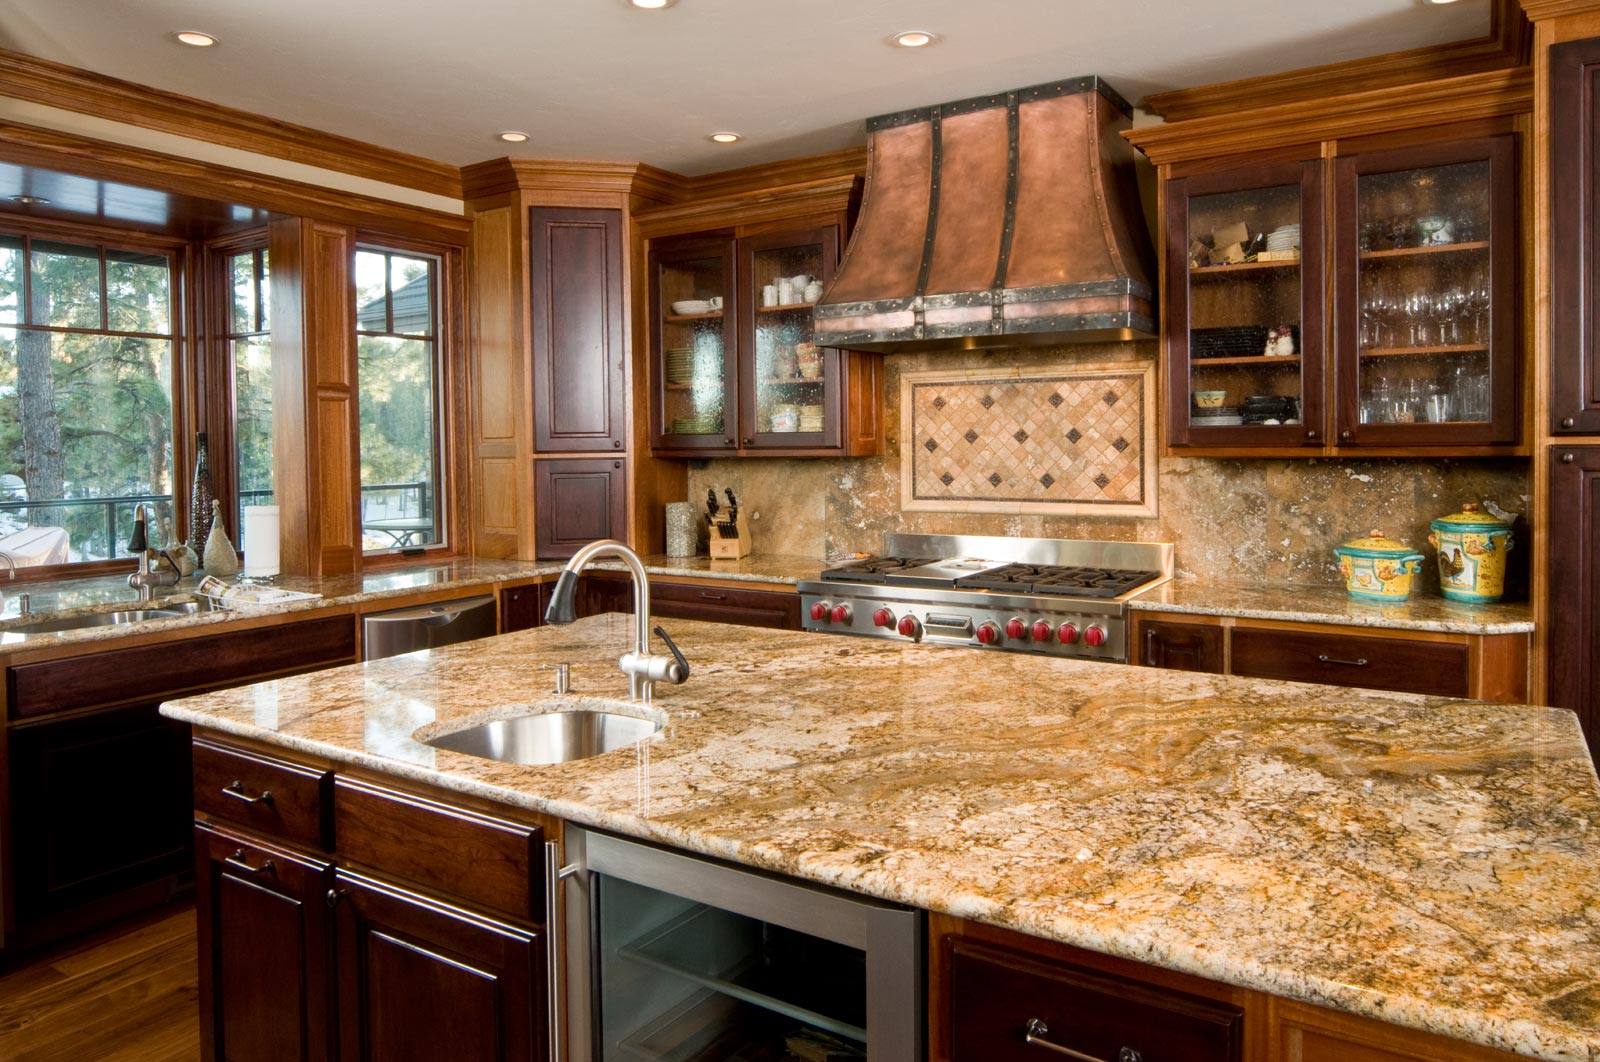 Http Americancommissars Blogspot Com 2014 04 Popular Kitchen Countertops Html